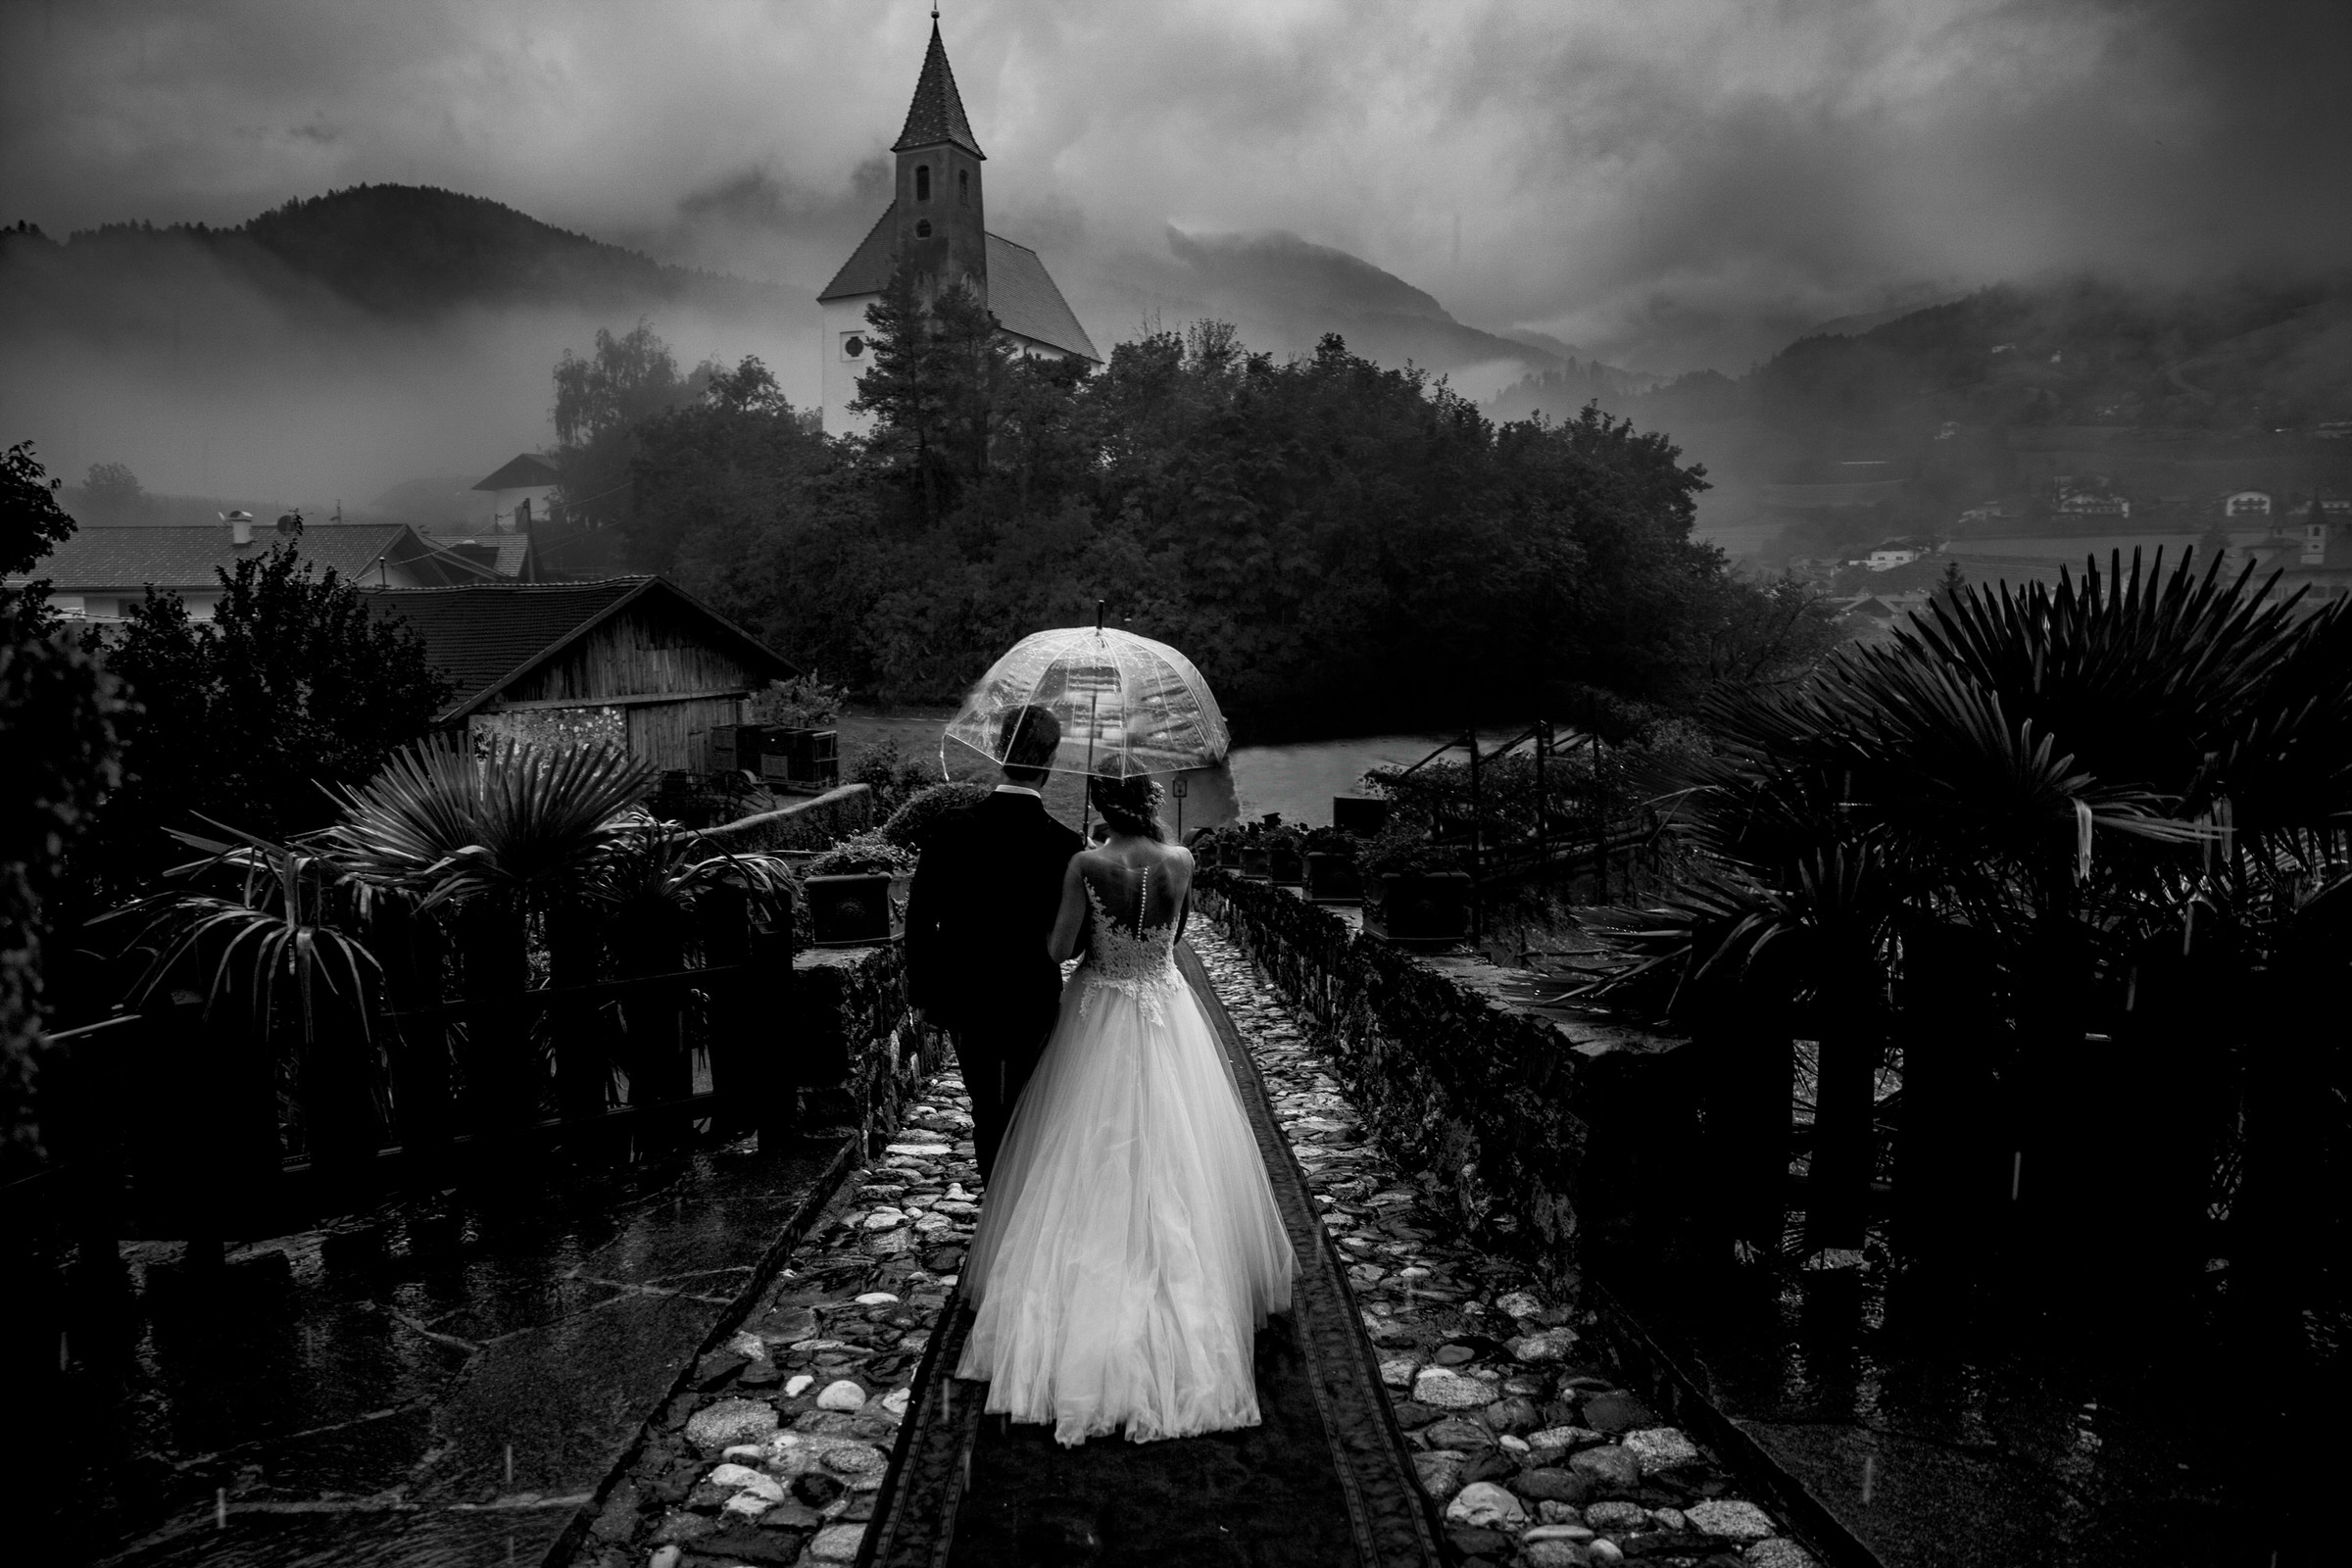 Couple walking under umbrella in Italian landscape  - photo by Luca + Marta Gallizio Photography